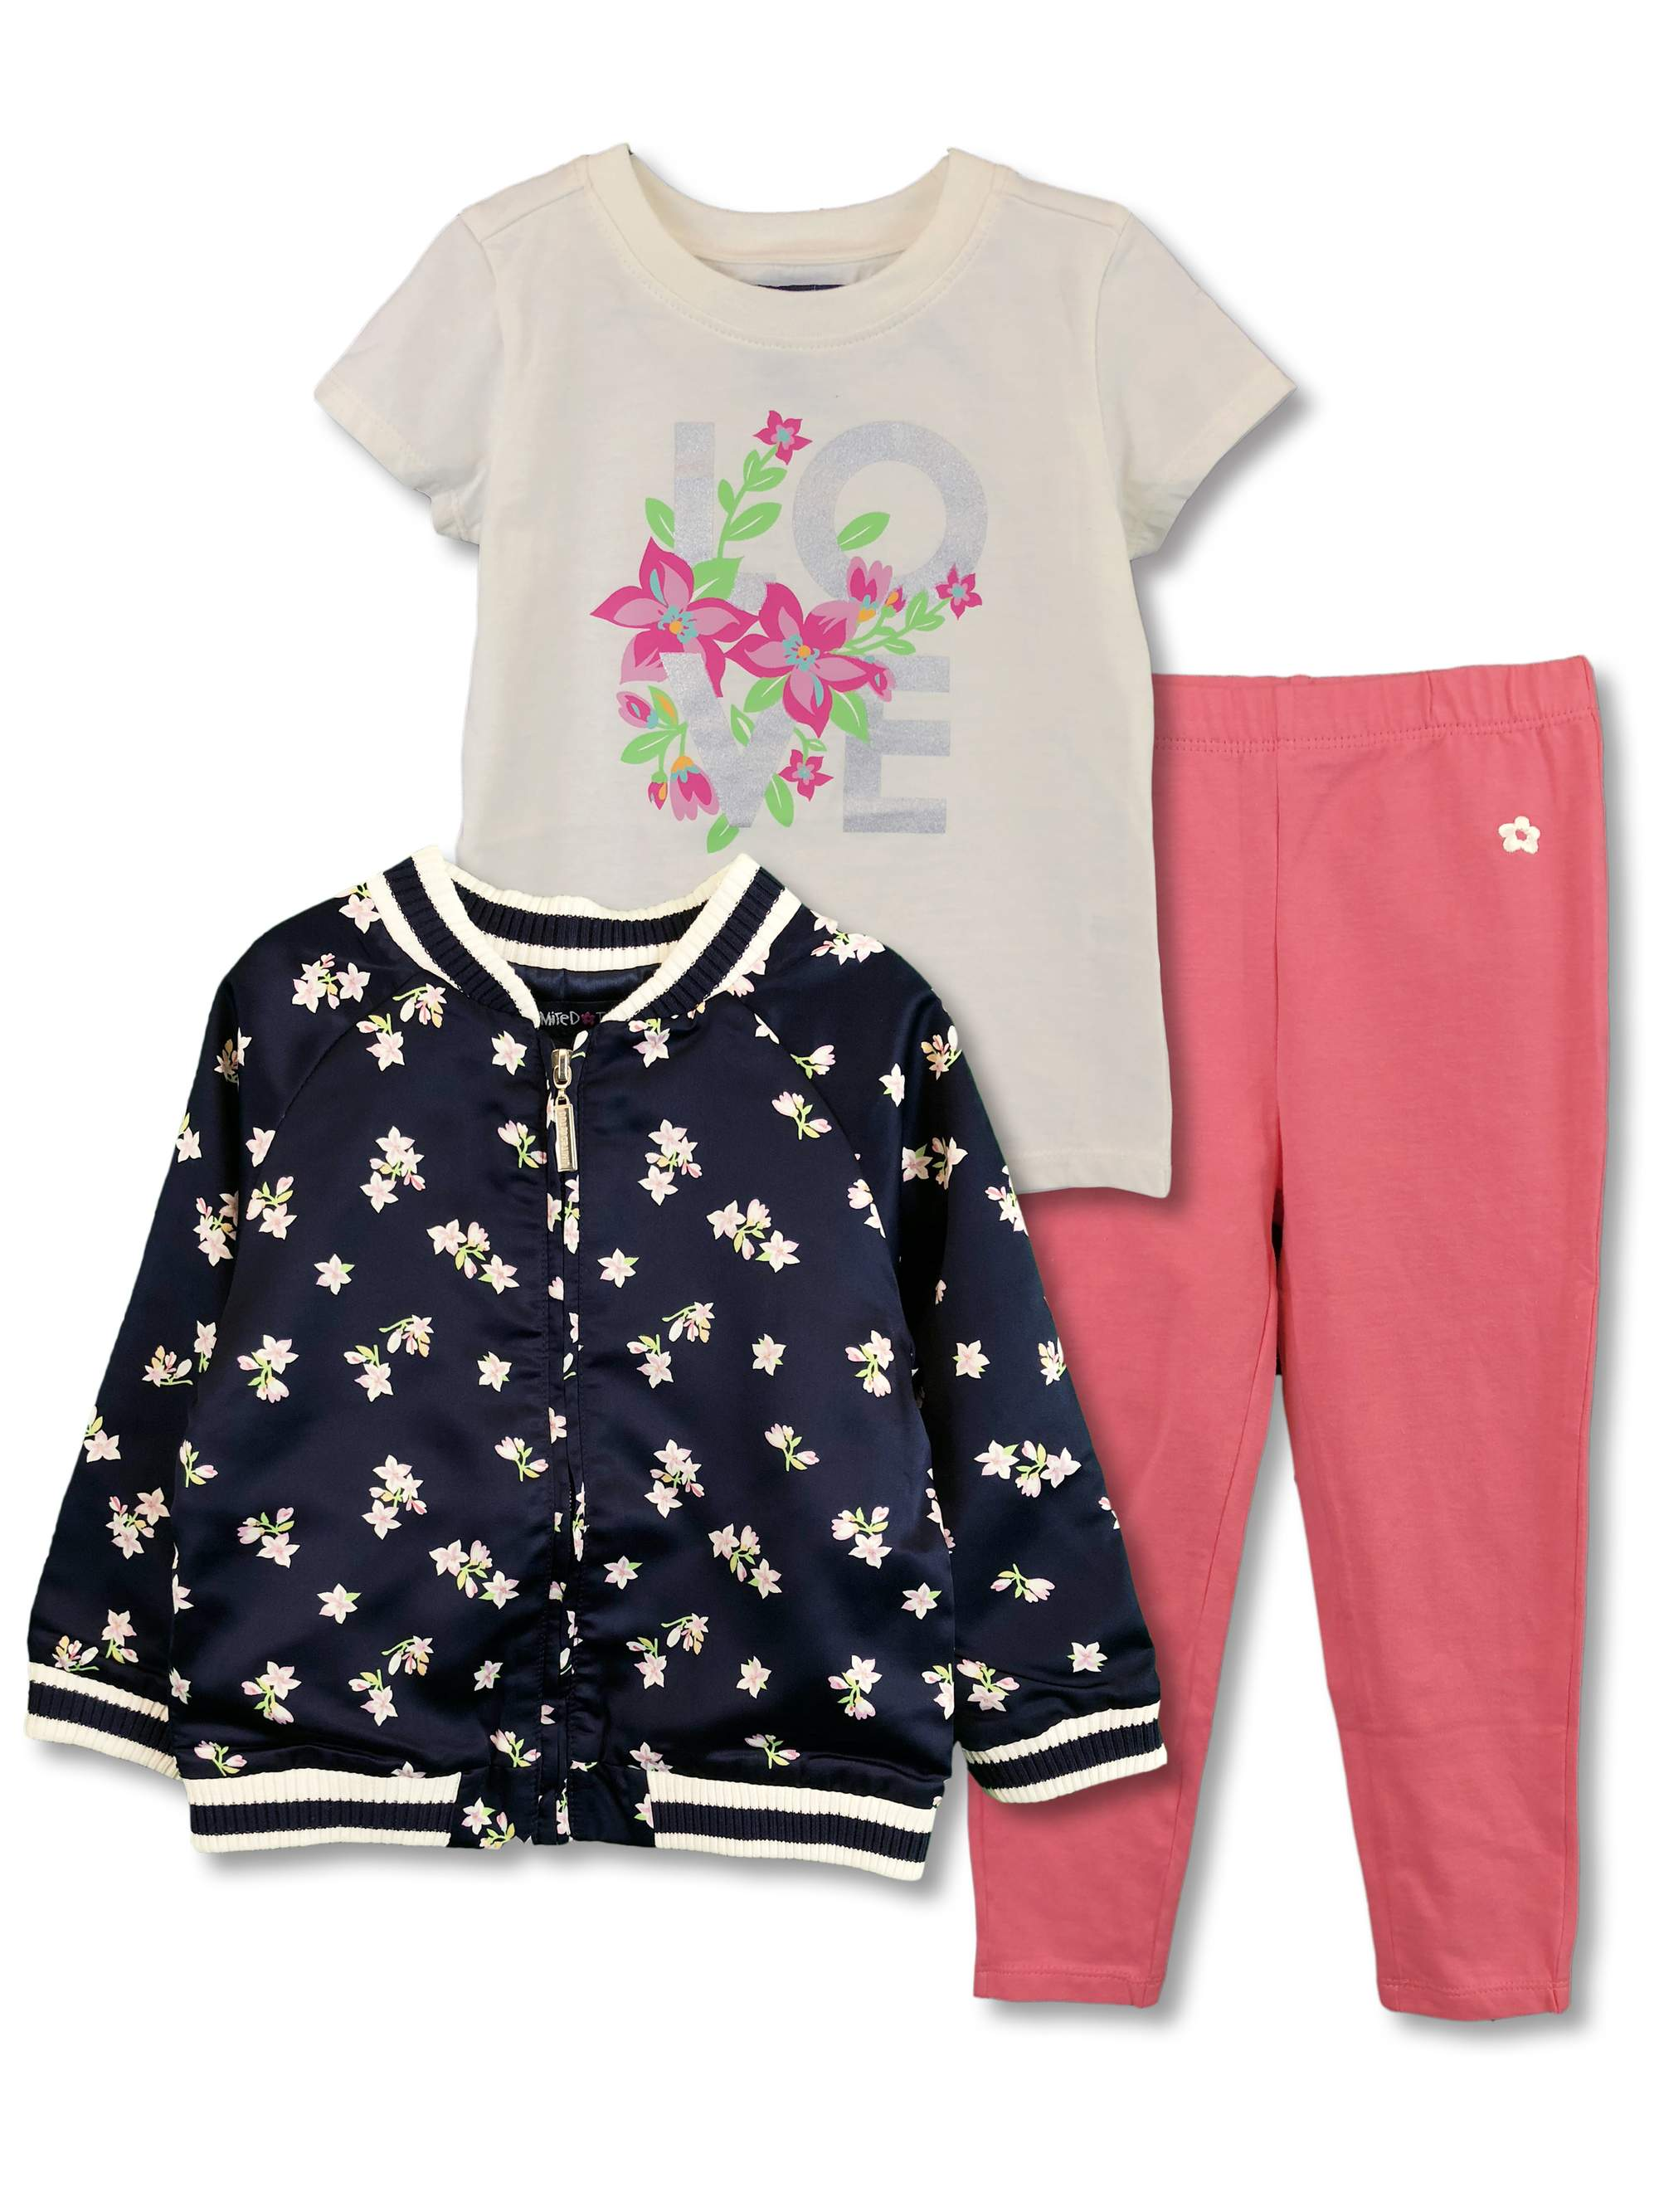 Satin Jacket, Floral T-Shirt and Leggings, 3pc Outfit Set (Toddler Girls)